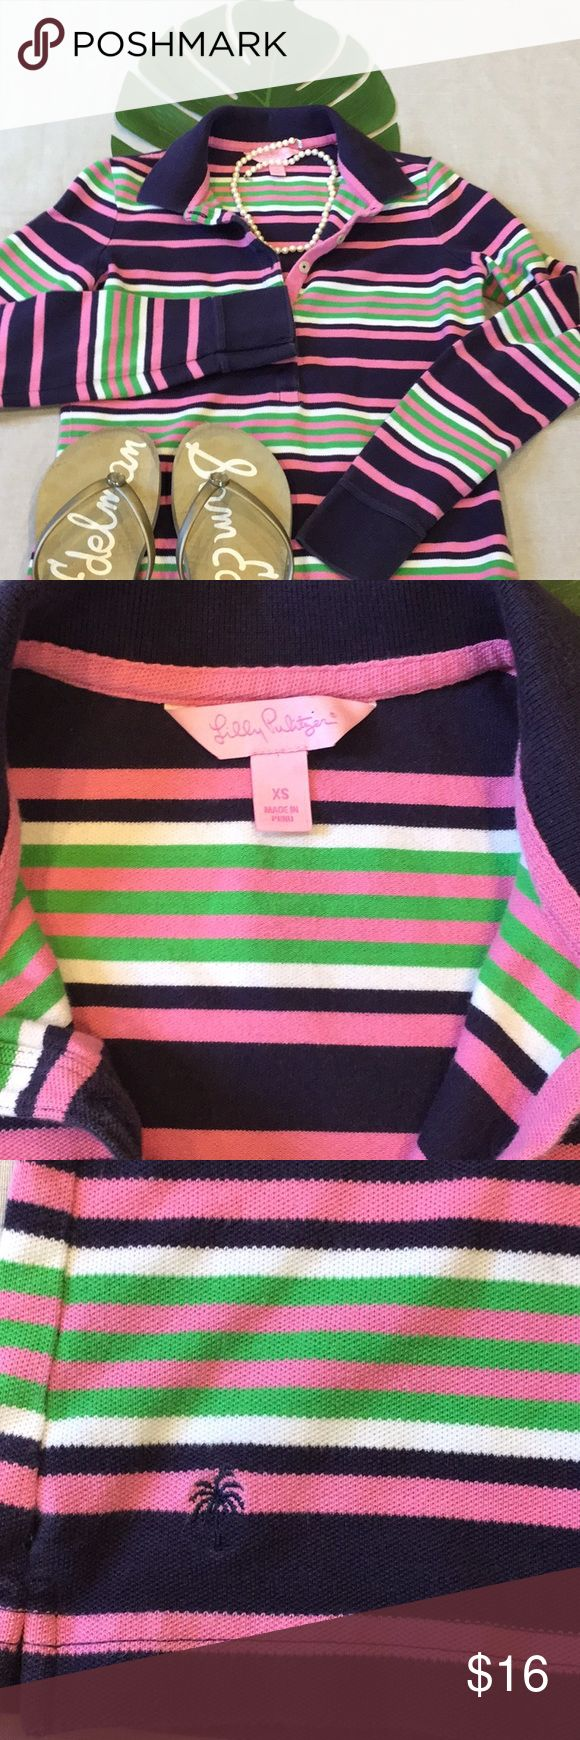 🌸👕Lilly Pulitzer Long Sleeve Polo Stripe XS 👕🌸 🍃🌷Lily Pulitzer striped, long sleeved, polo shirt, XS.  Cotton pique, blue, green, pink and white stripes. Slight fading, overall in very good shape, lots of life left in her. 🌷🍃 please review measurements in case of shrinkage  994 Chest 16.5 Sleeve 25 from shoulder seam to cuff  Length 24 Shoulder 13.5 Lilly Pulitzer Tops Button Down Shirts